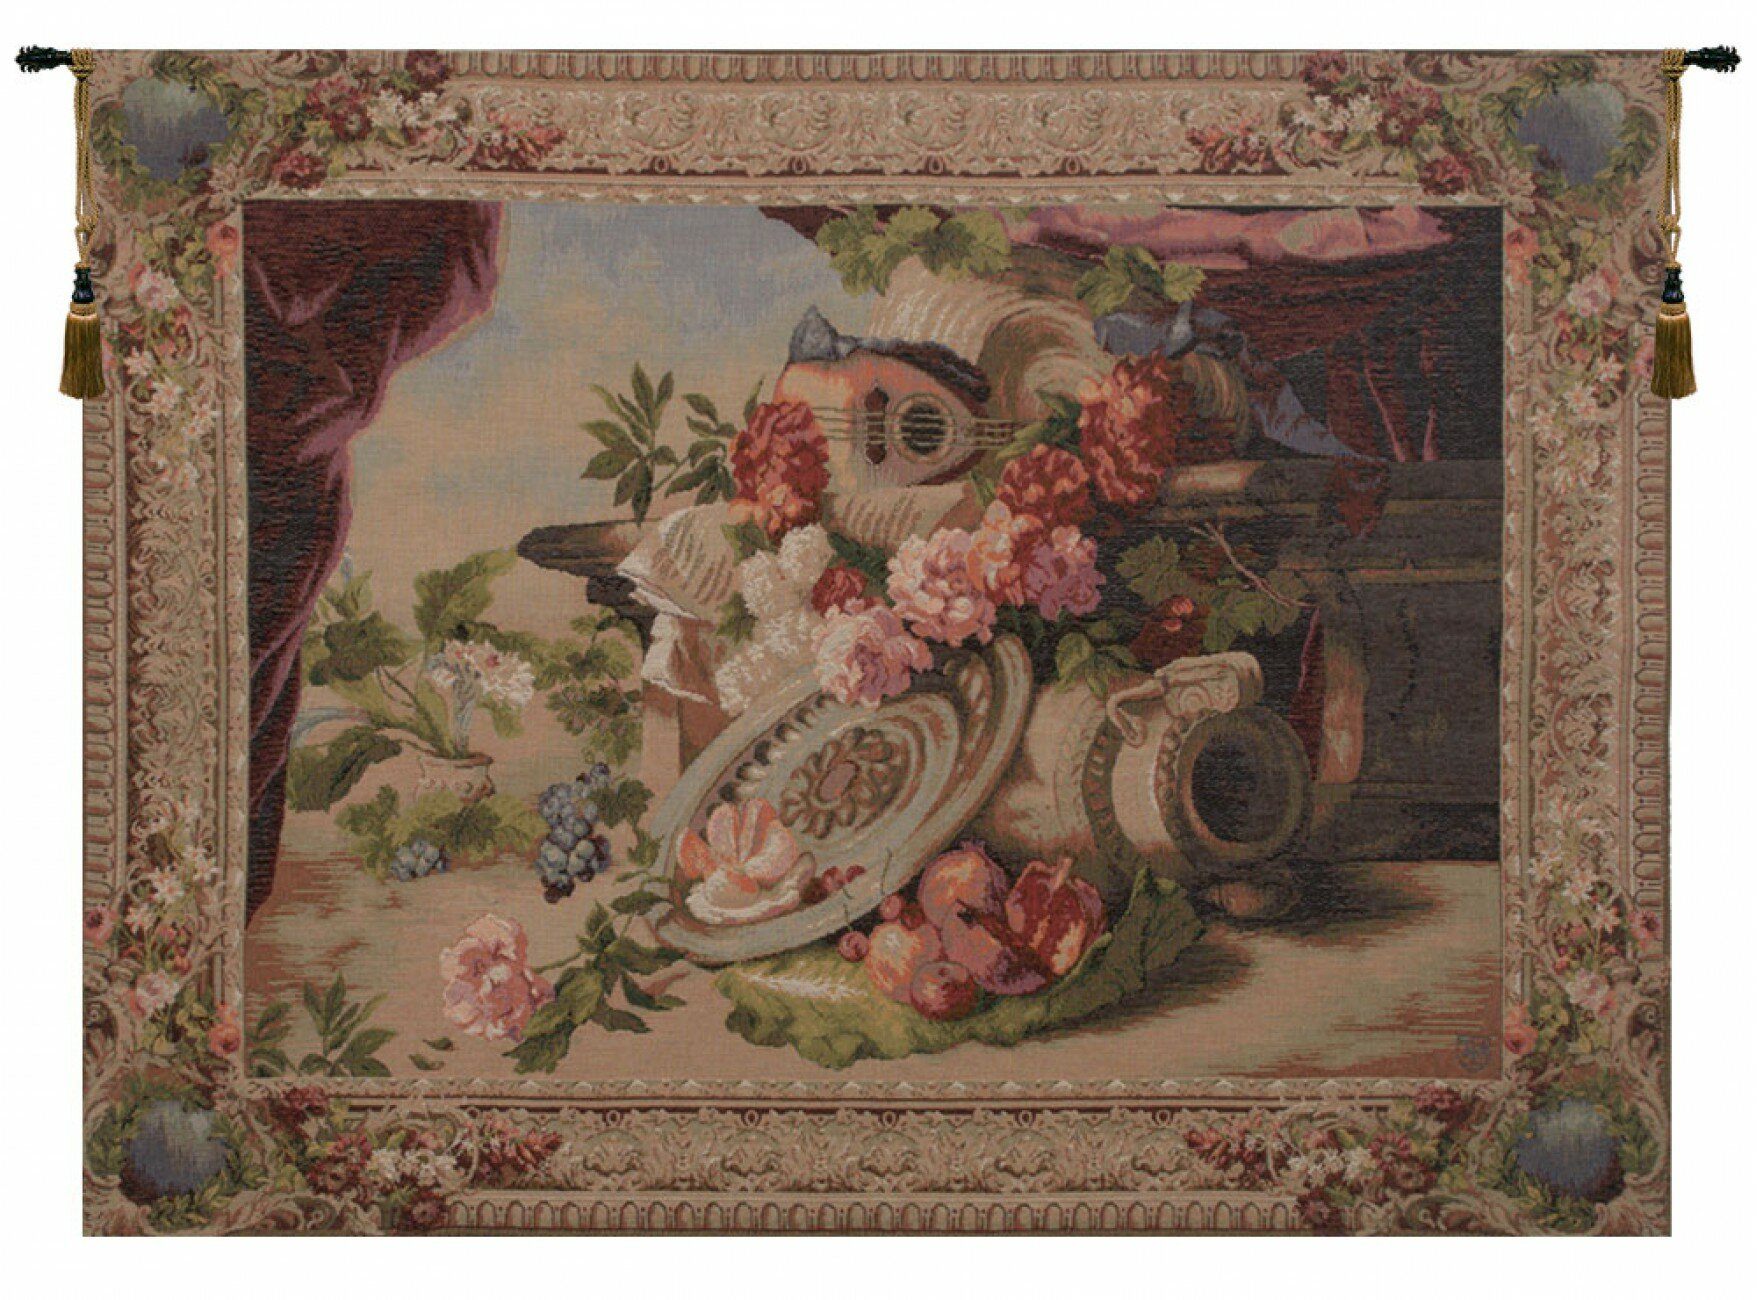 Mandolin European Tapestry Pertaining To Most Recent Blended Fabric Ethereal Days Chinoiserie Wall Hangings With Rod (View 17 of 20)